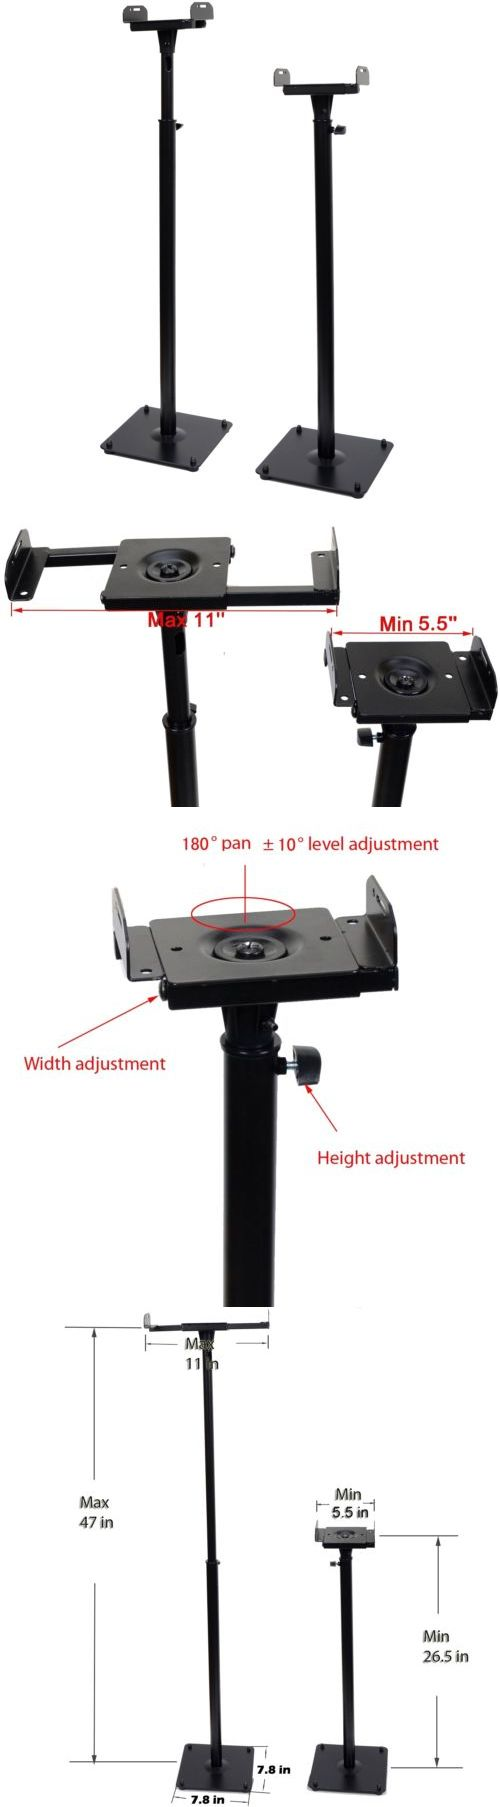 Speaker Mounts and Stands: Adjustable Height Universal Home Theater Satellite Speaker Stands Holder Rack BUY IT NOW ONLY: $47.89